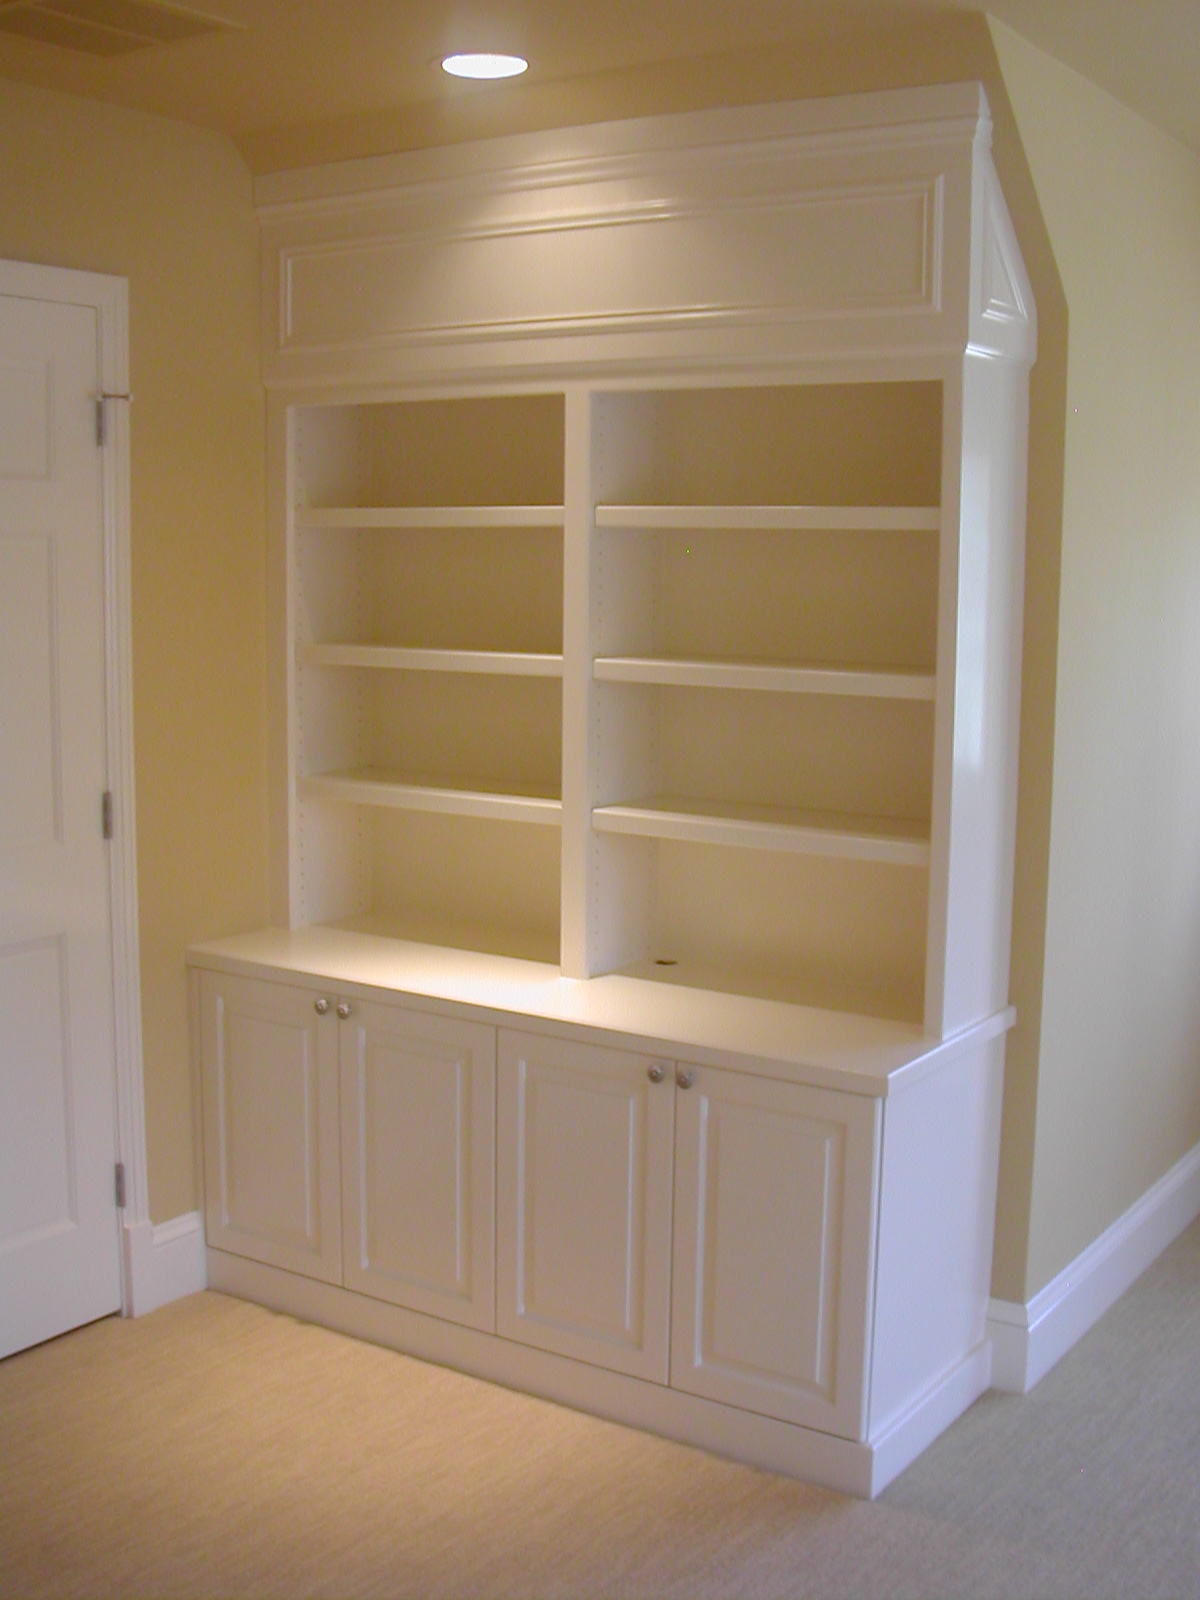 Built in cabinet ideas homesfeed for Shelves and cabinets